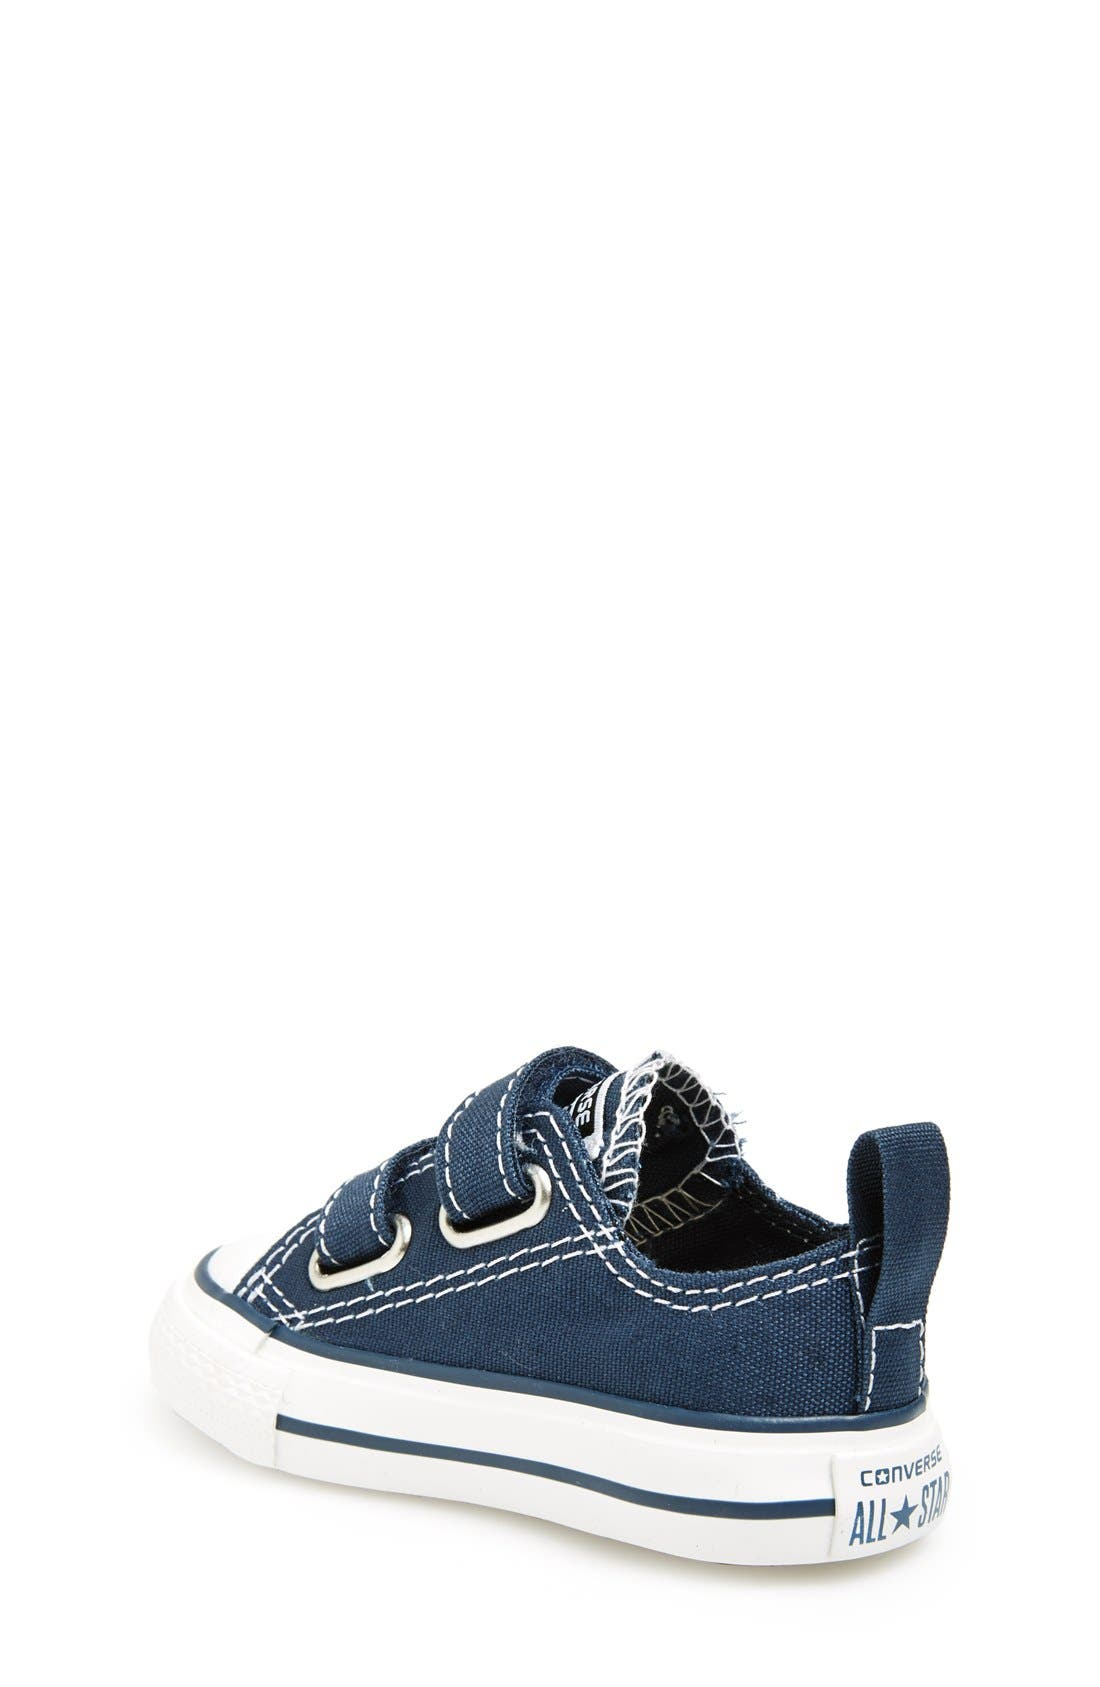 Kids' Clothing, Shoes & Accs Hot Sale Unisex Toddler Navy Converse Infant Size 3 Clothing, Shoes & Accessories